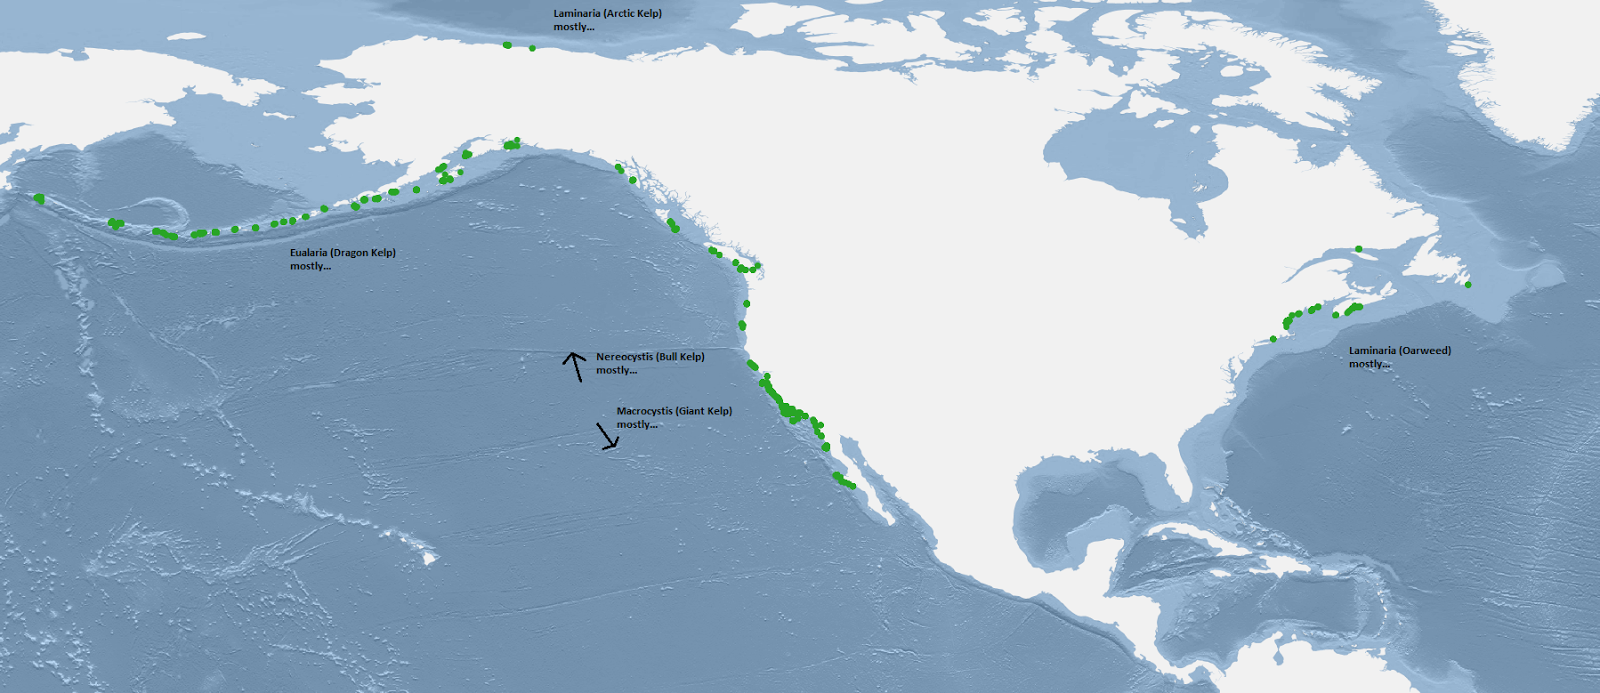 Kelp Forests of North America